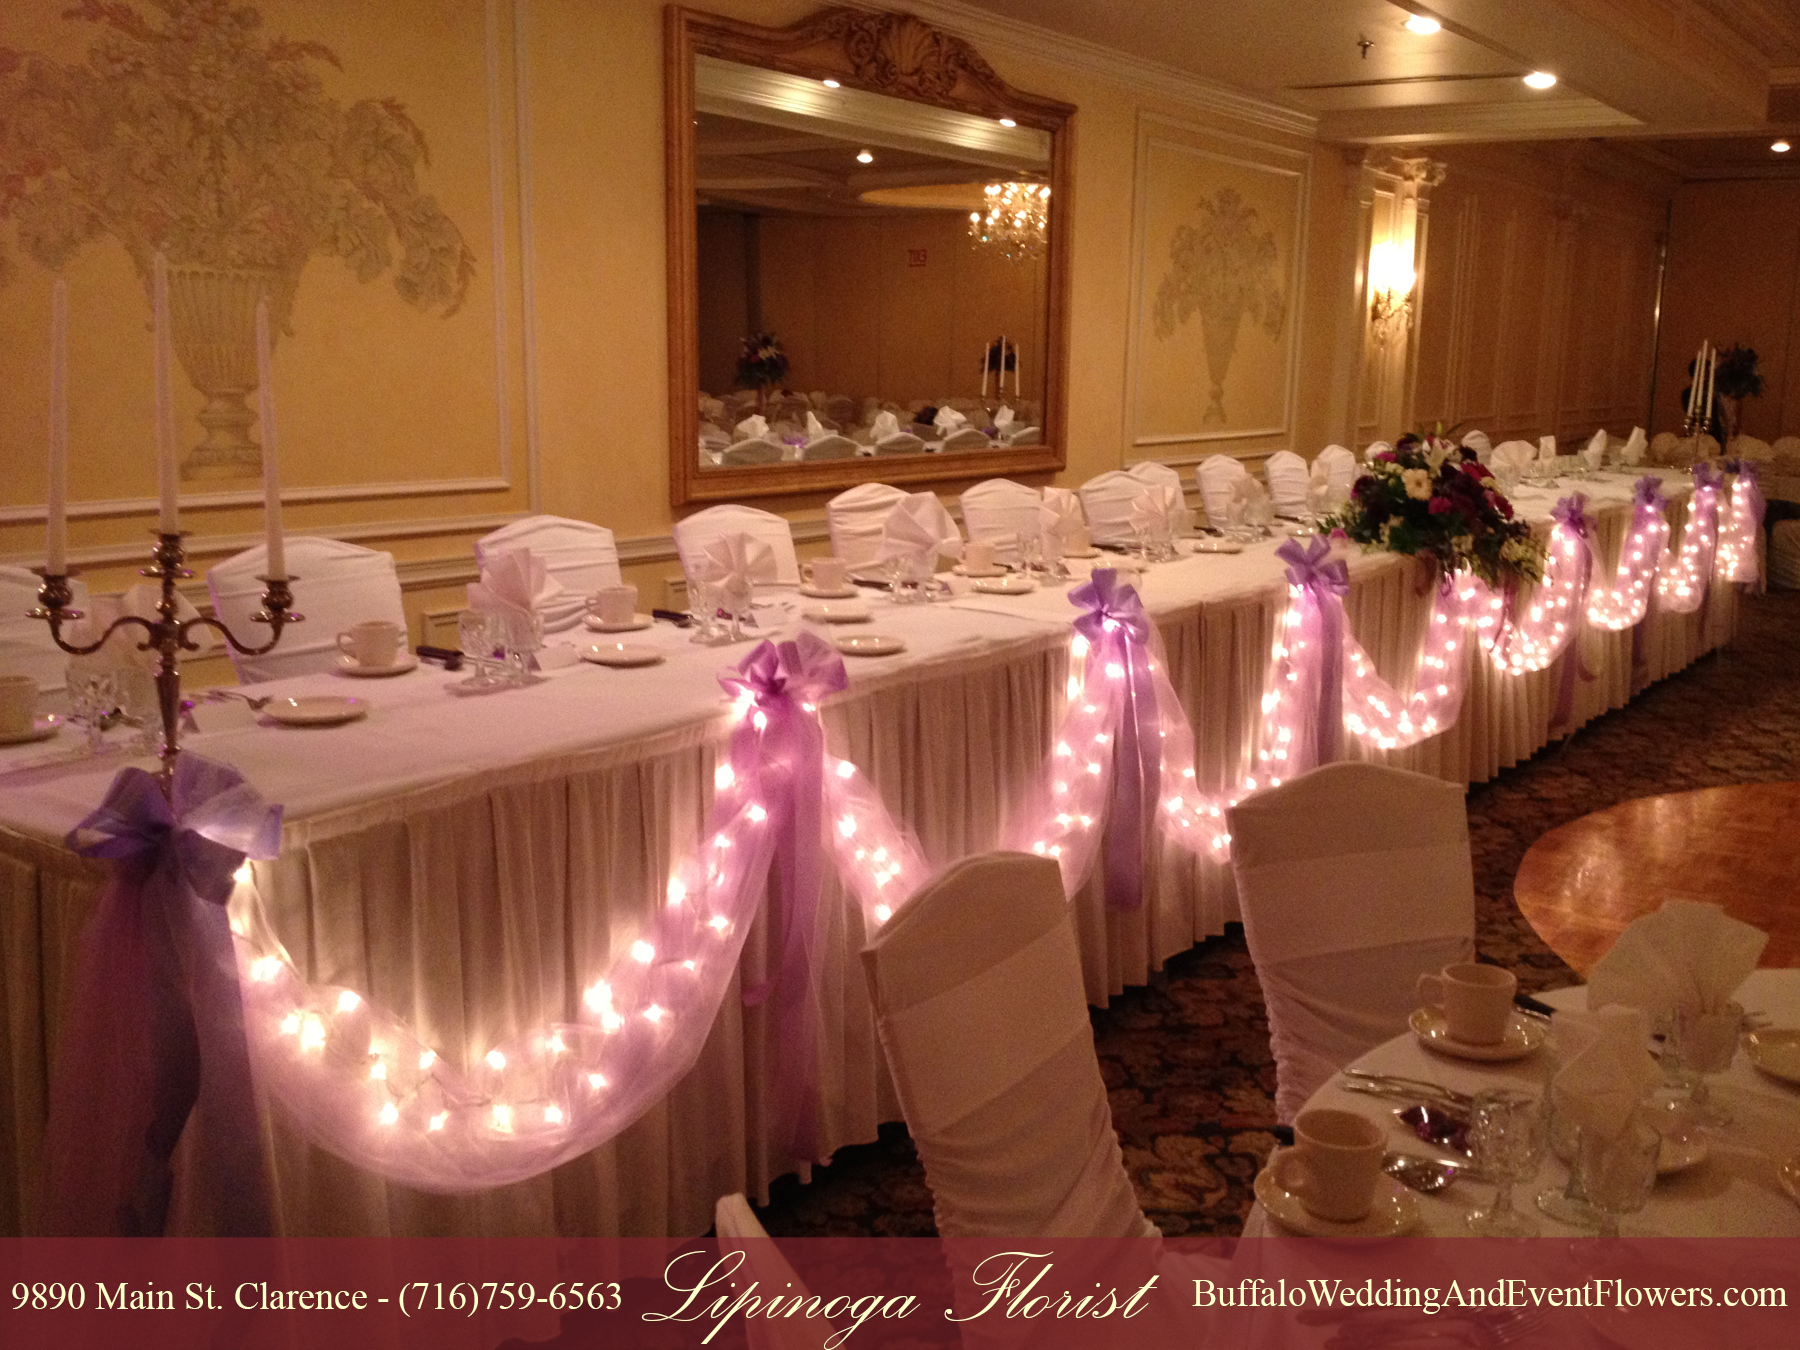 Tulle Draping With Lights Buffalo Wedding Amp Event